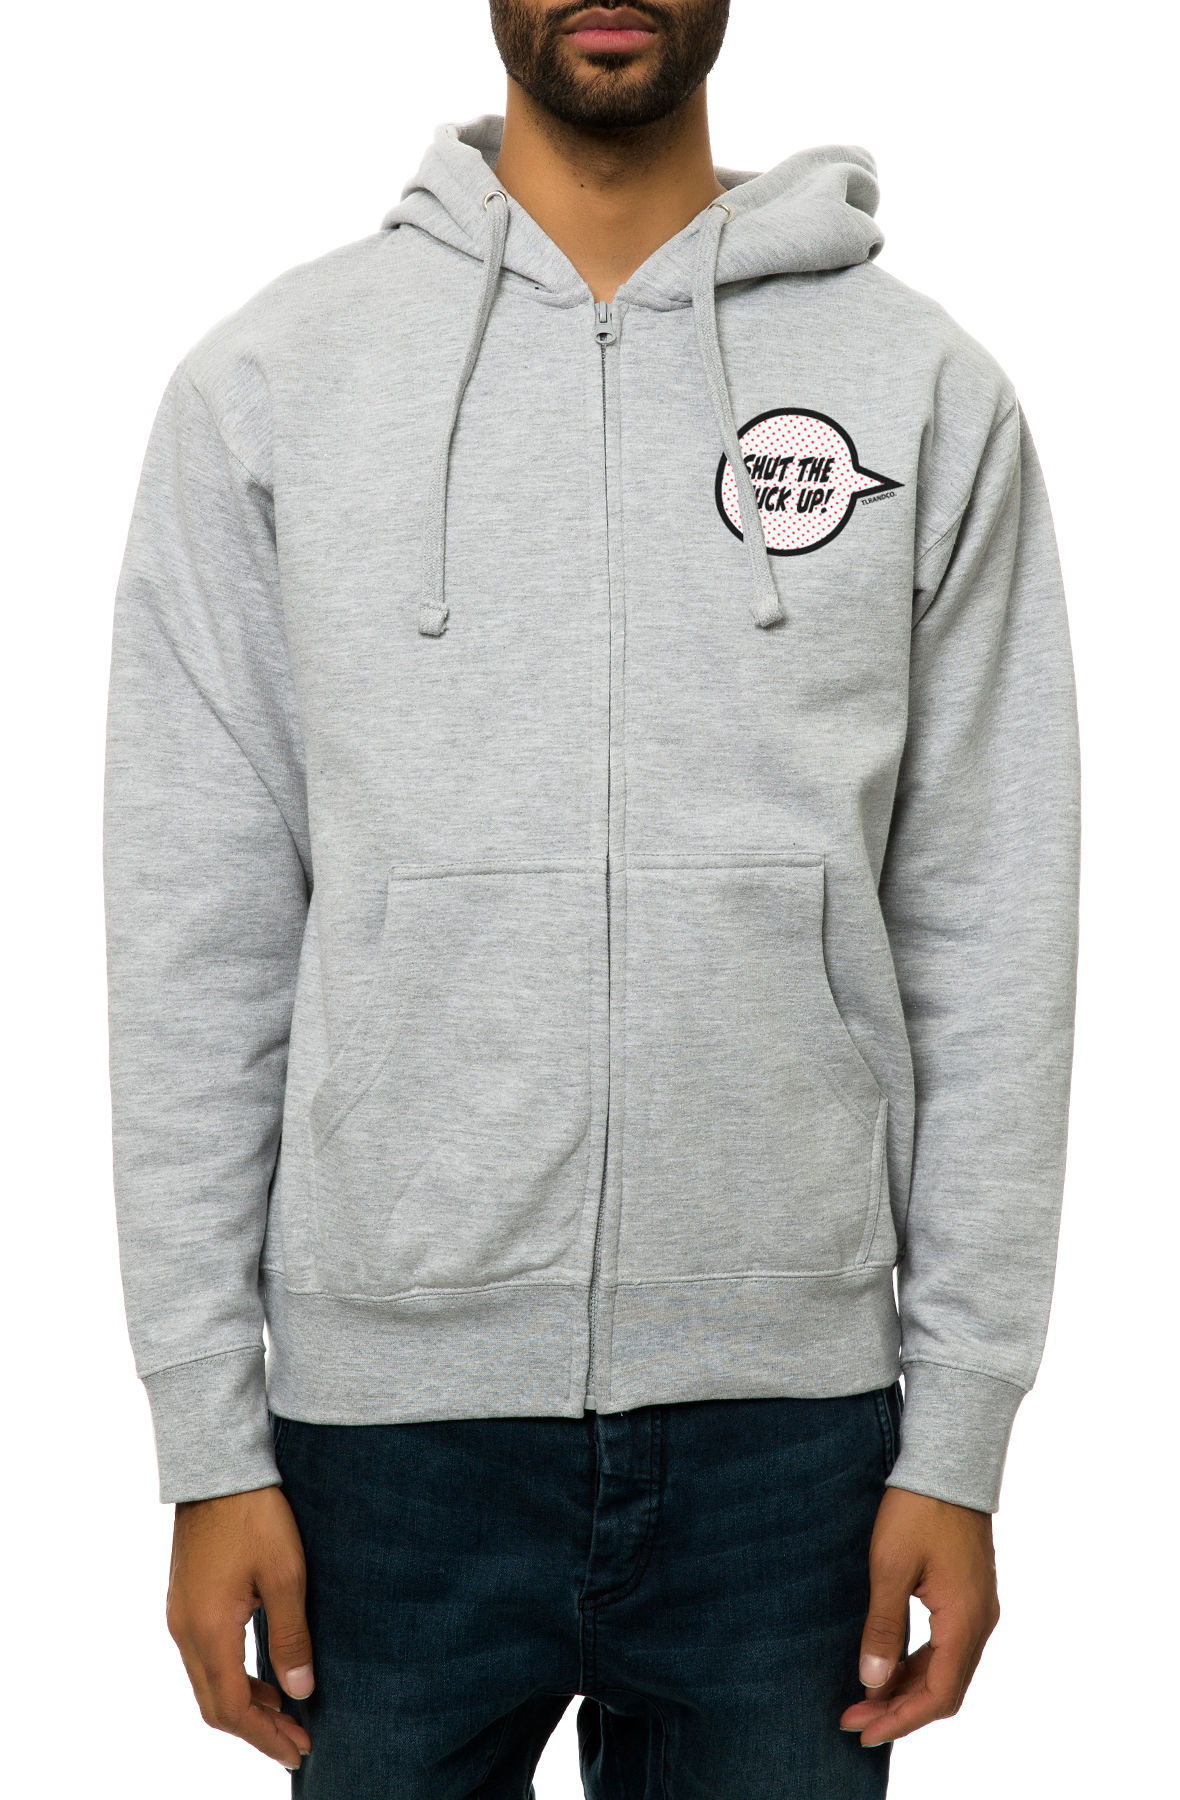 The STFU Zip-Up Hoodie in Heather Grey